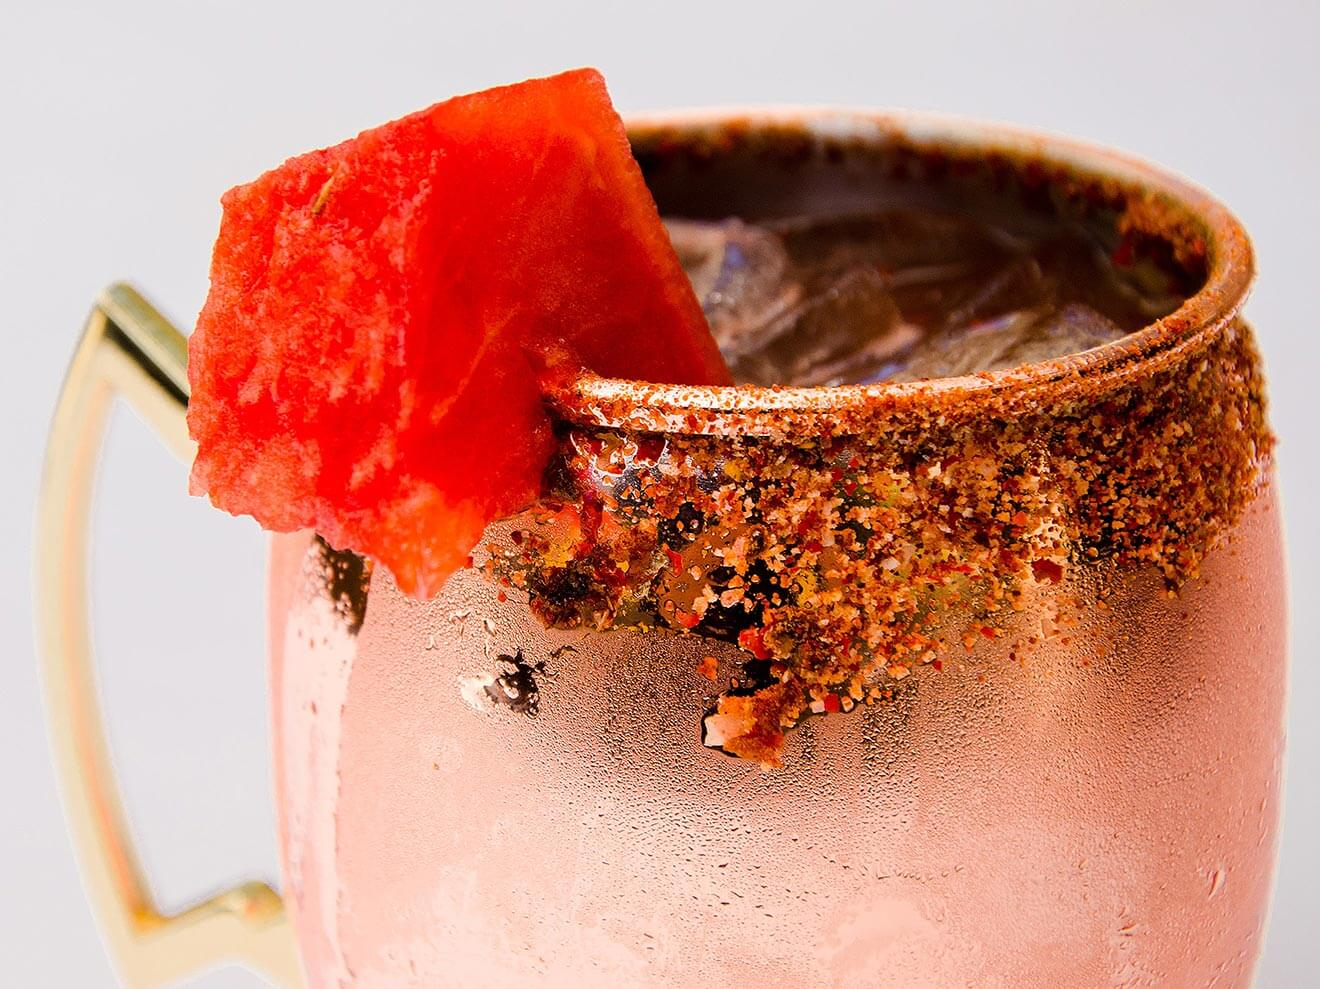 Copper Pot, cocktail in mule mug, watermelon garnish